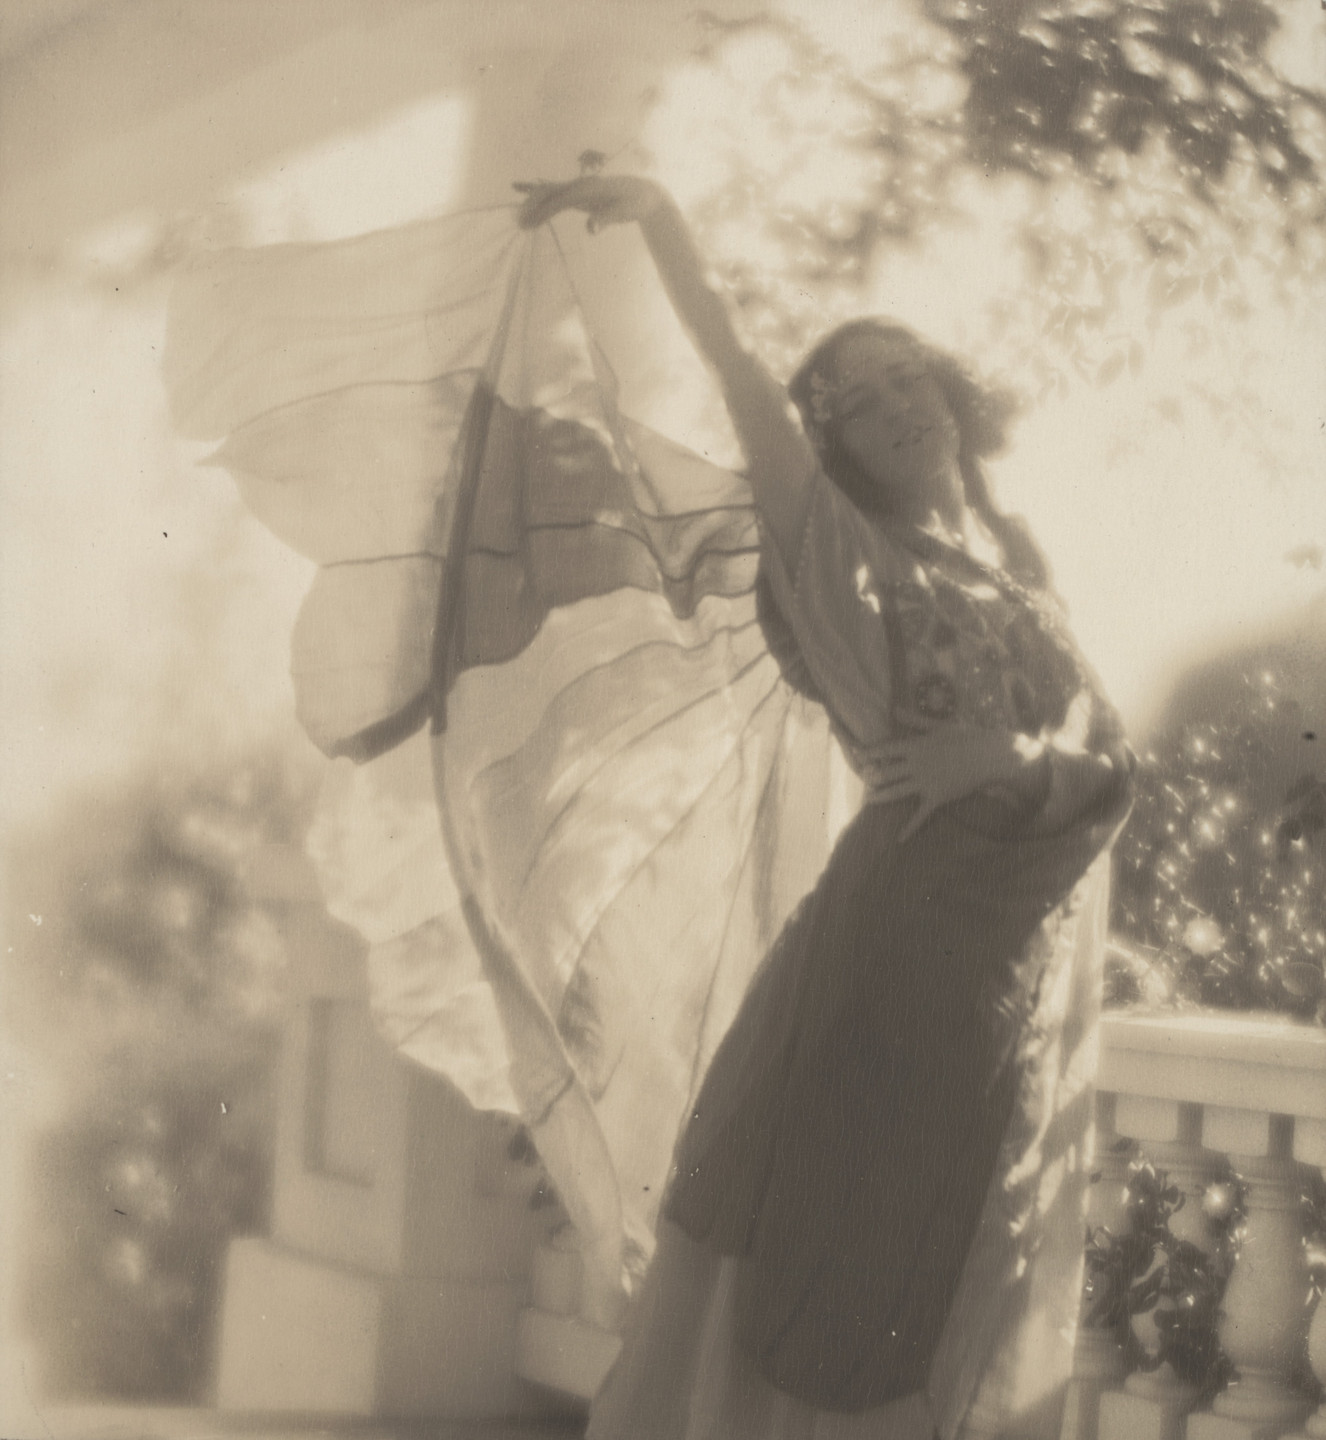 Edward Weston. Violet Romer. (standing on porch, lifting veil). c. 1917